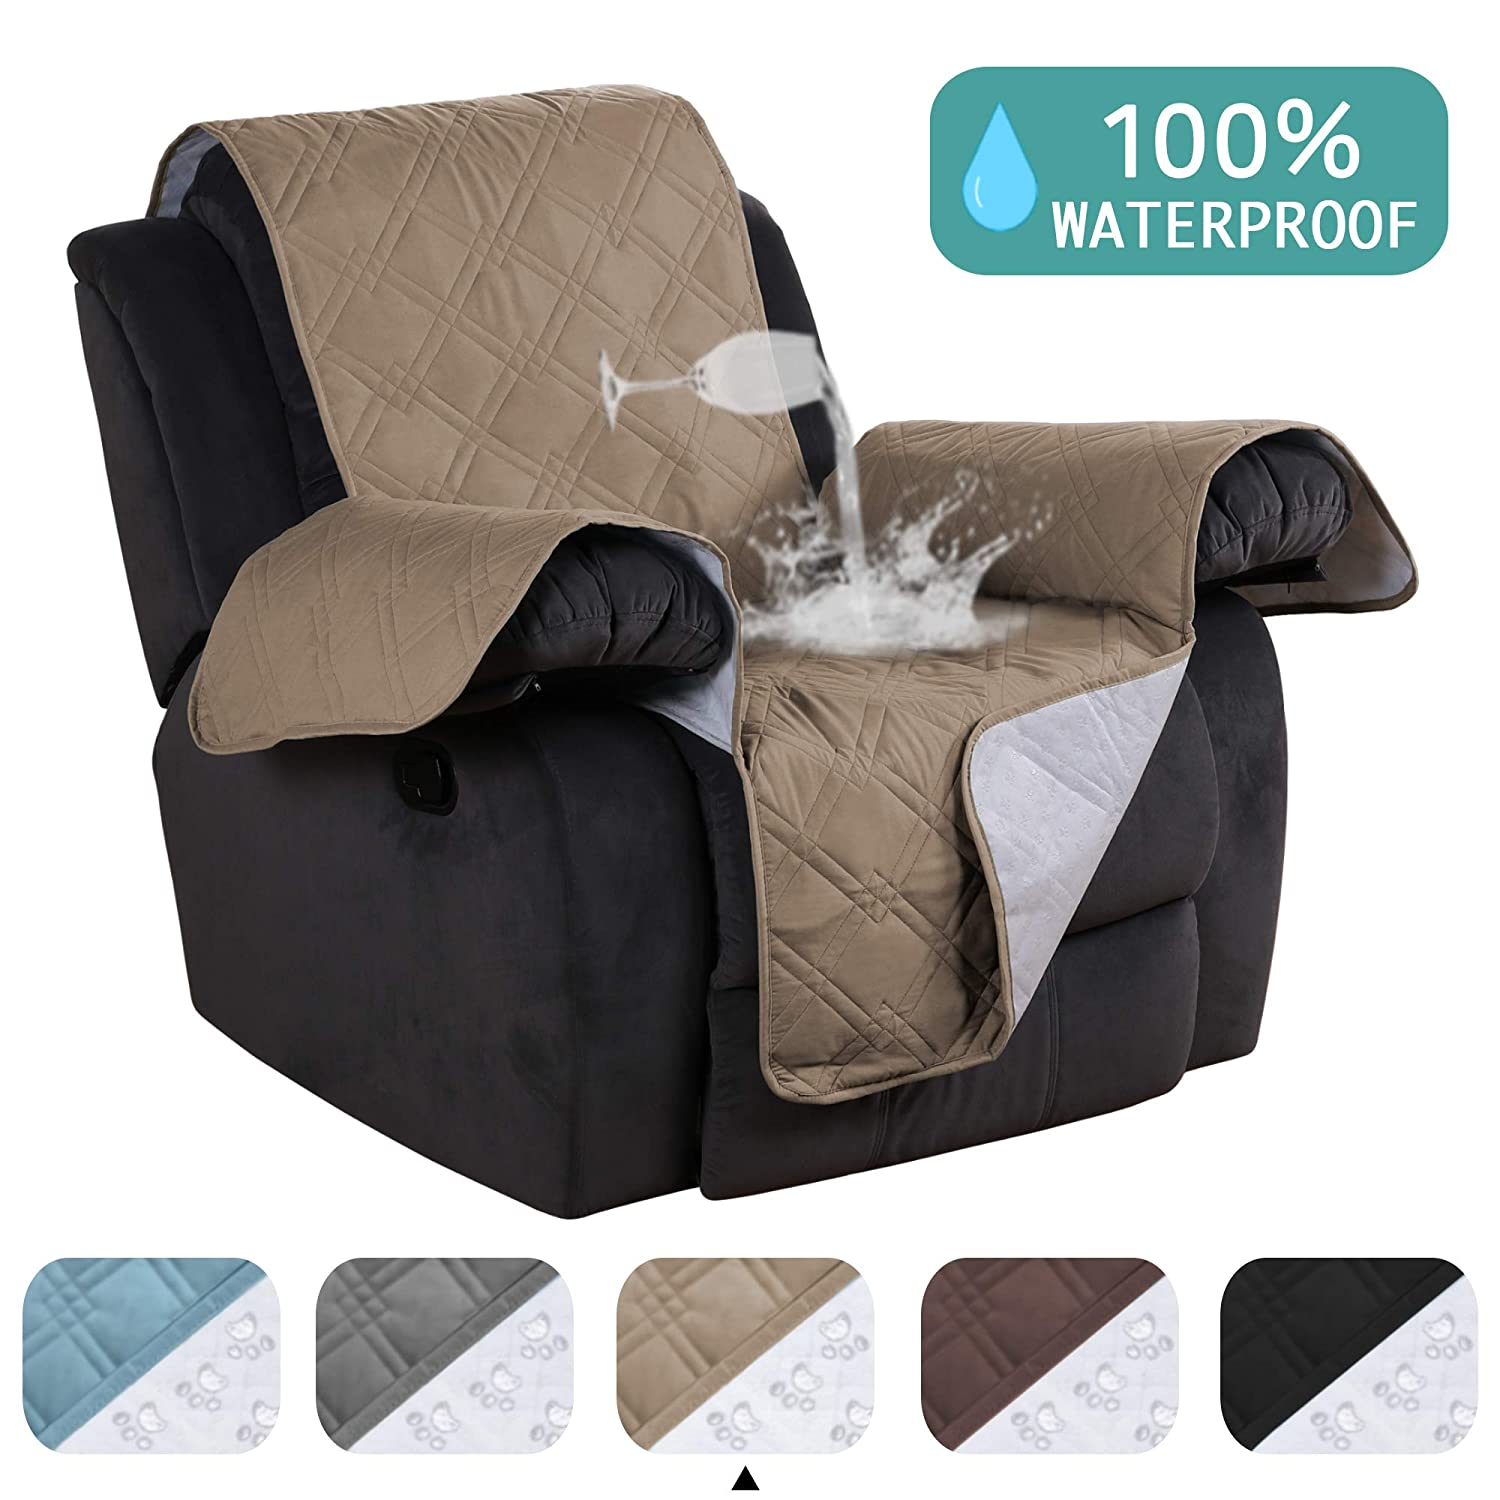 Remarkable Waterproof Recliner Chair Cover For Small Recliners Pet Quilted Sofa Covers For Leather Non Slip Furniture Protector Soft And Cotton Finish Crafted Customarchery Wood Chair Design Ideas Customarcherynet